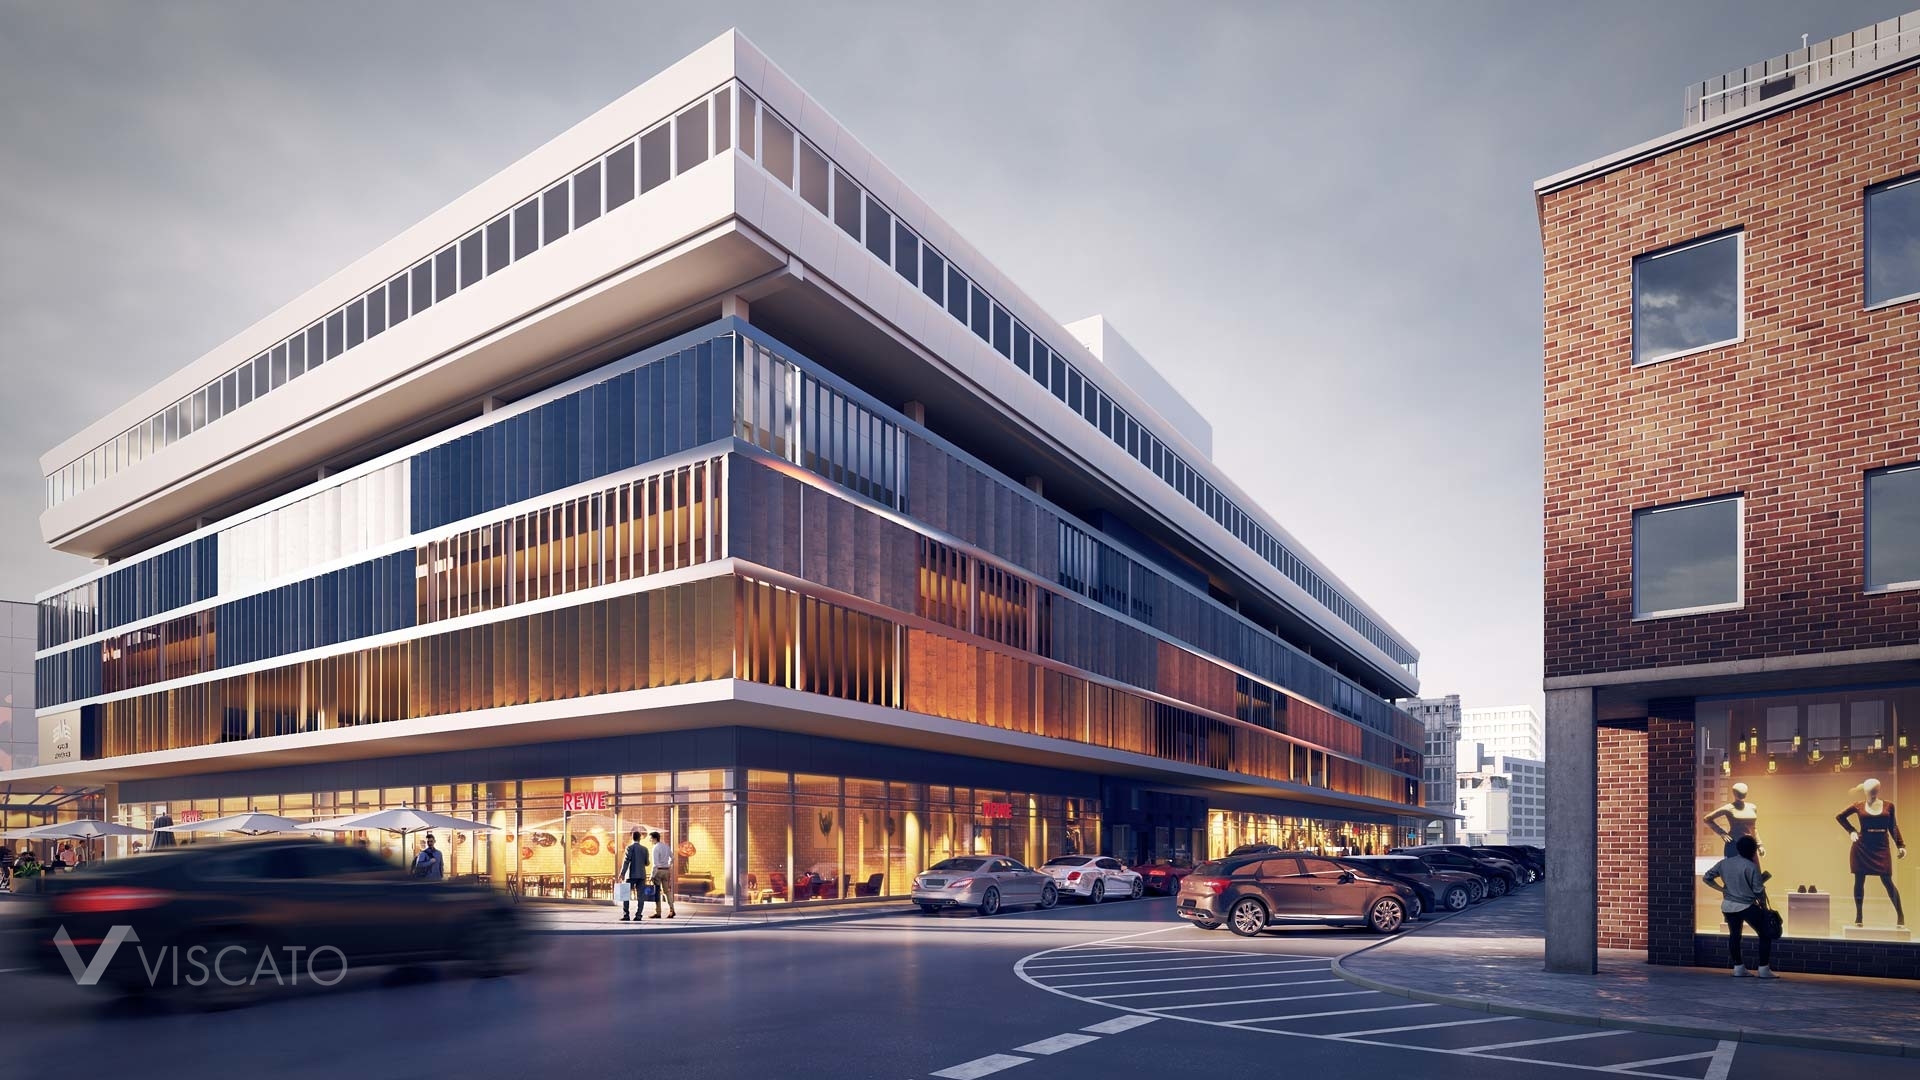 3D exterior visualization of a shopping centre in Cologne, Viscato